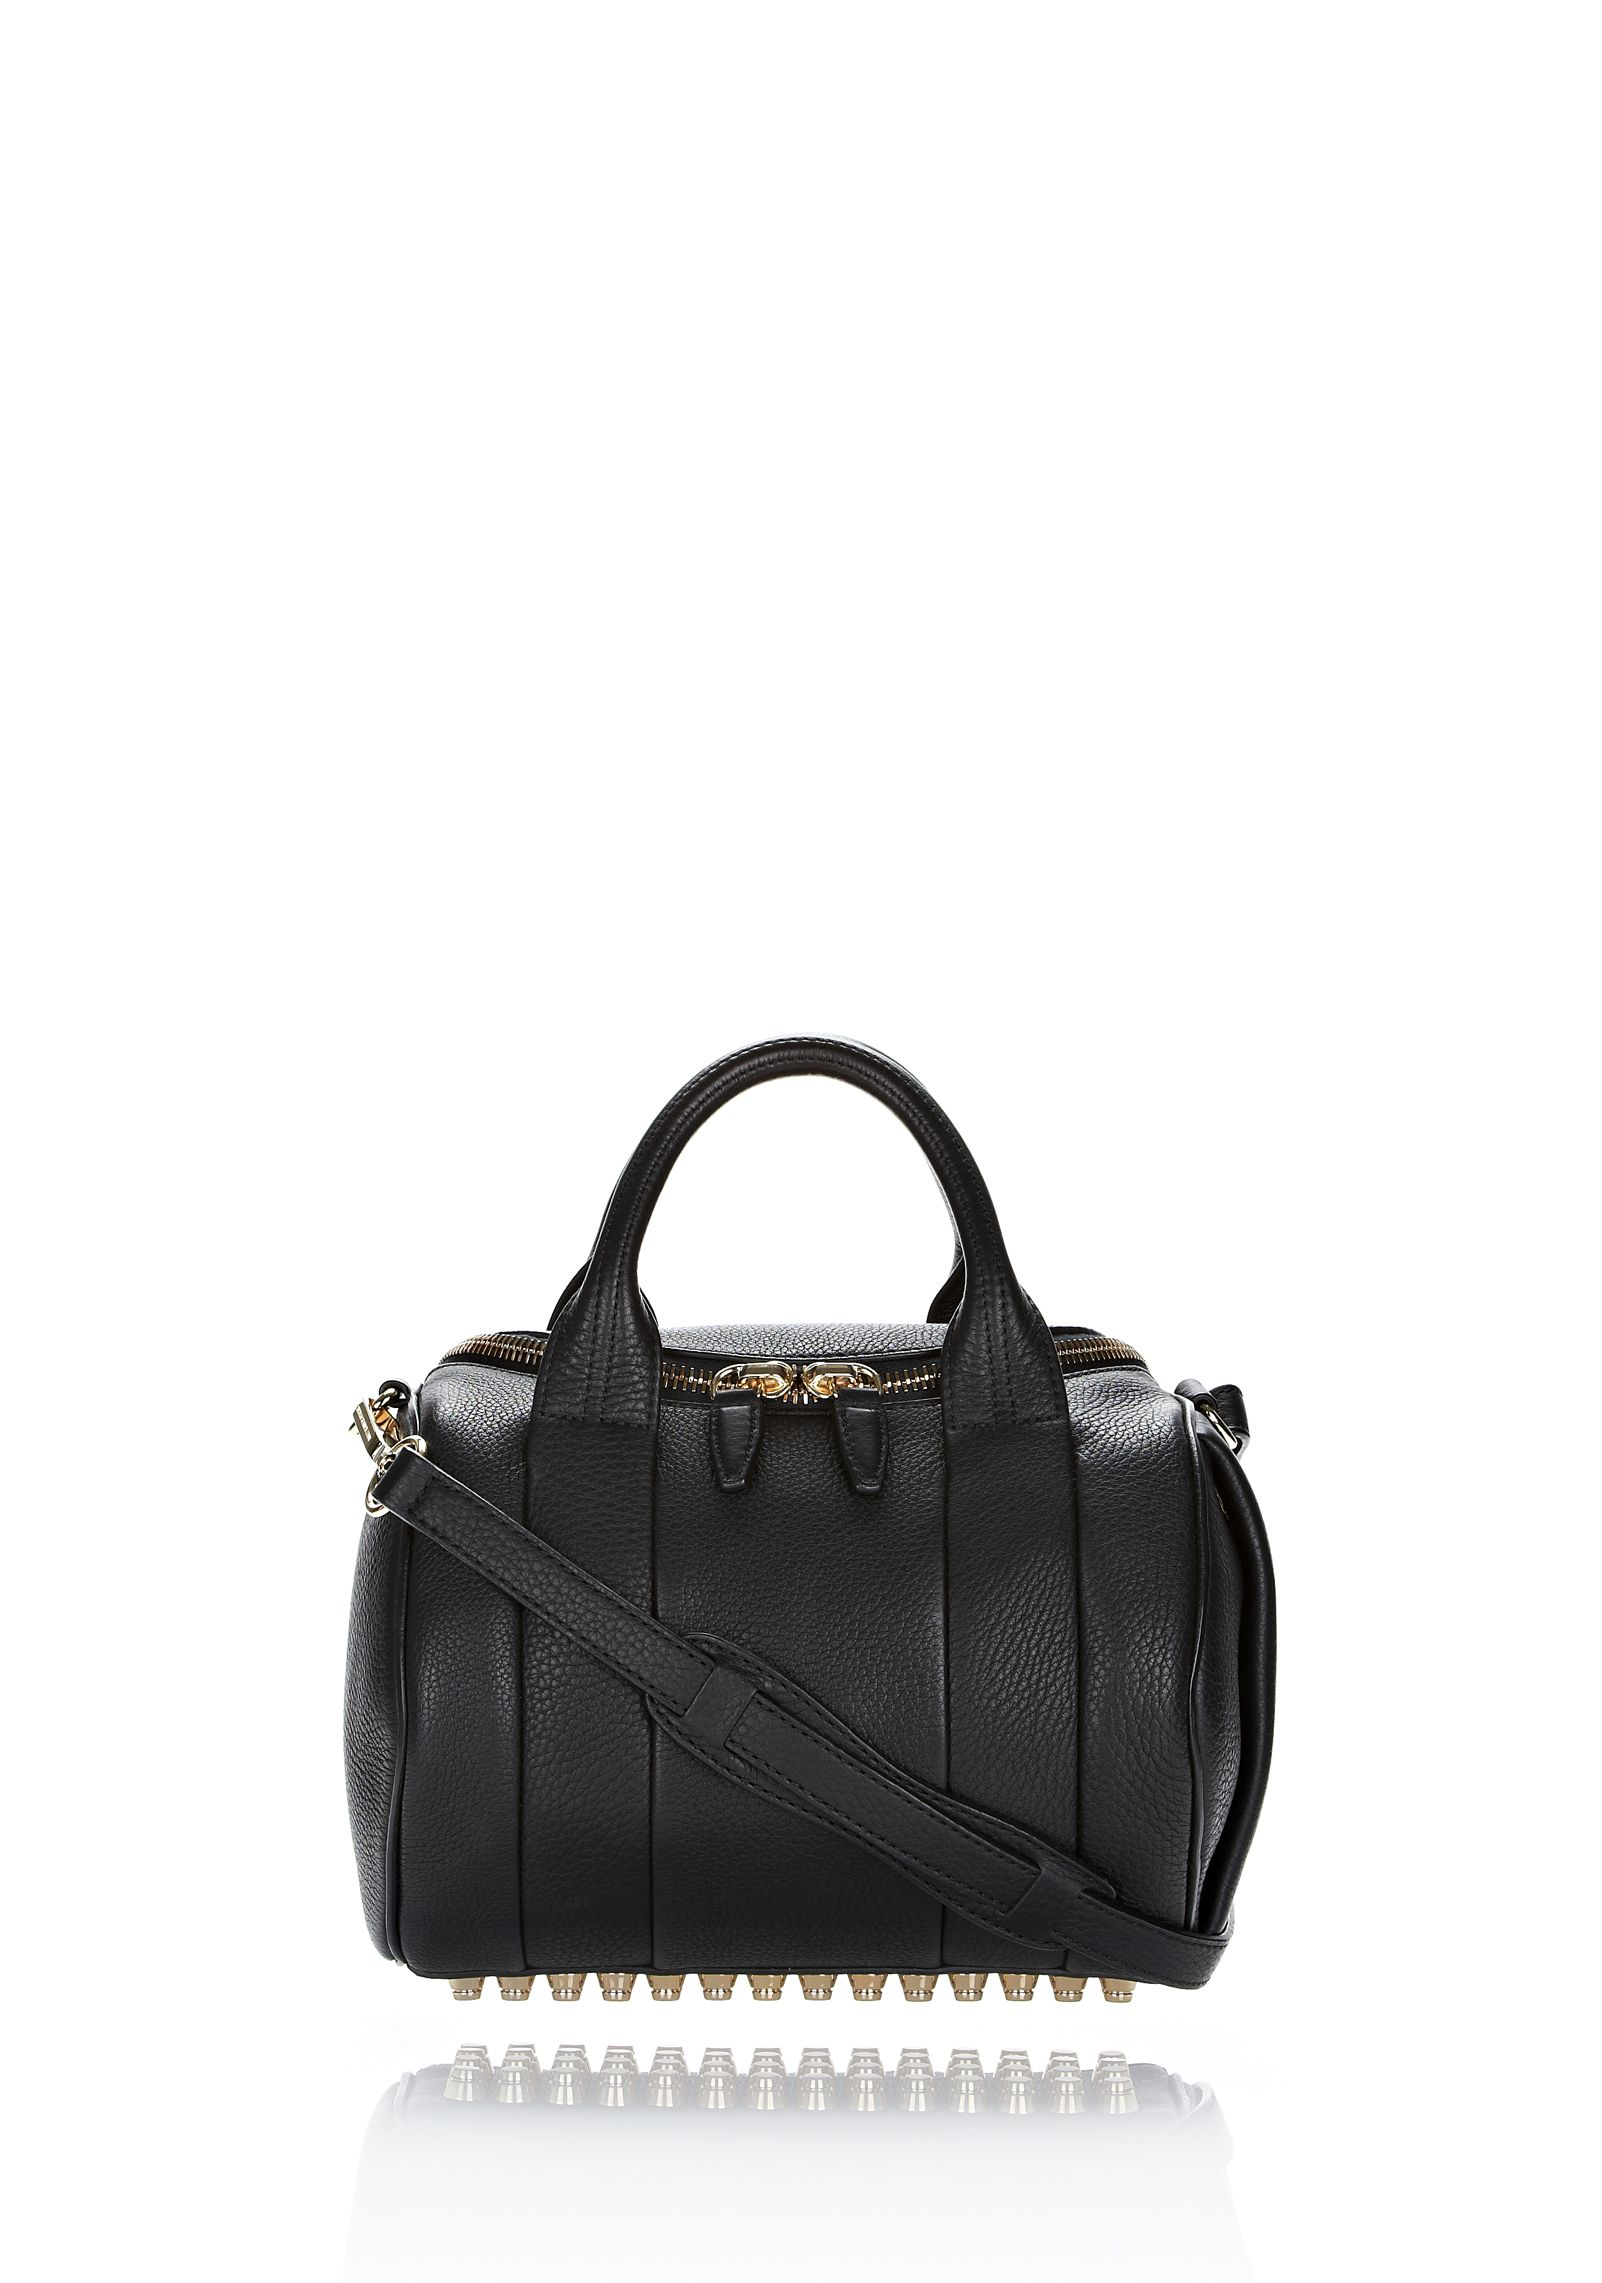 ROCKIE IN SOFT BLACK WITH PALE GOLD - Shoulder Bags Women - Alexander Wang Online Store